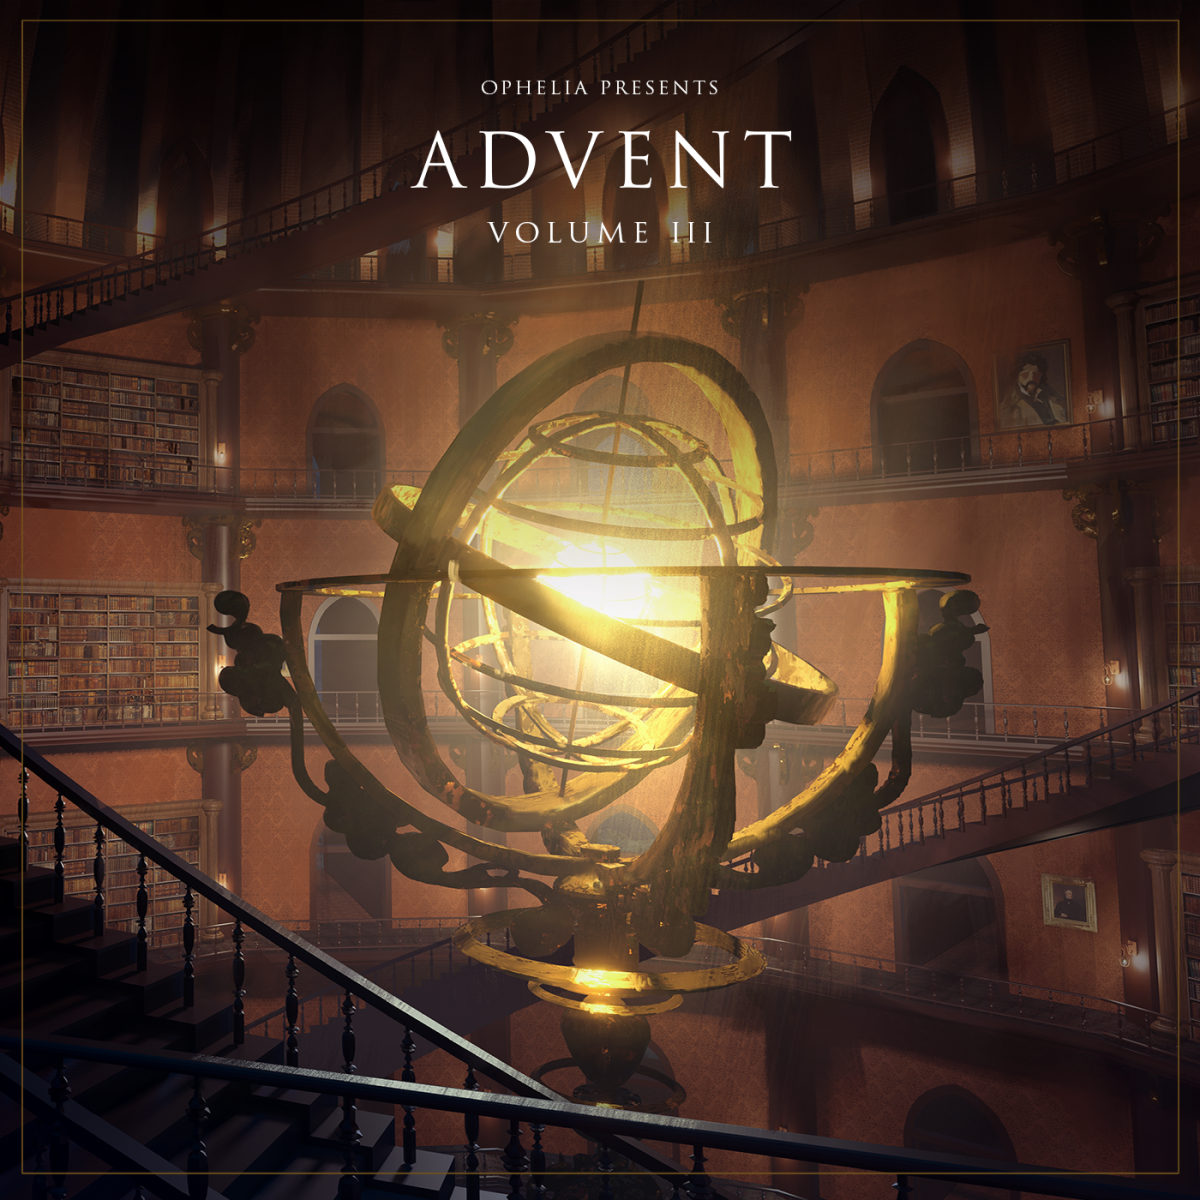 Artwork for Advent III.